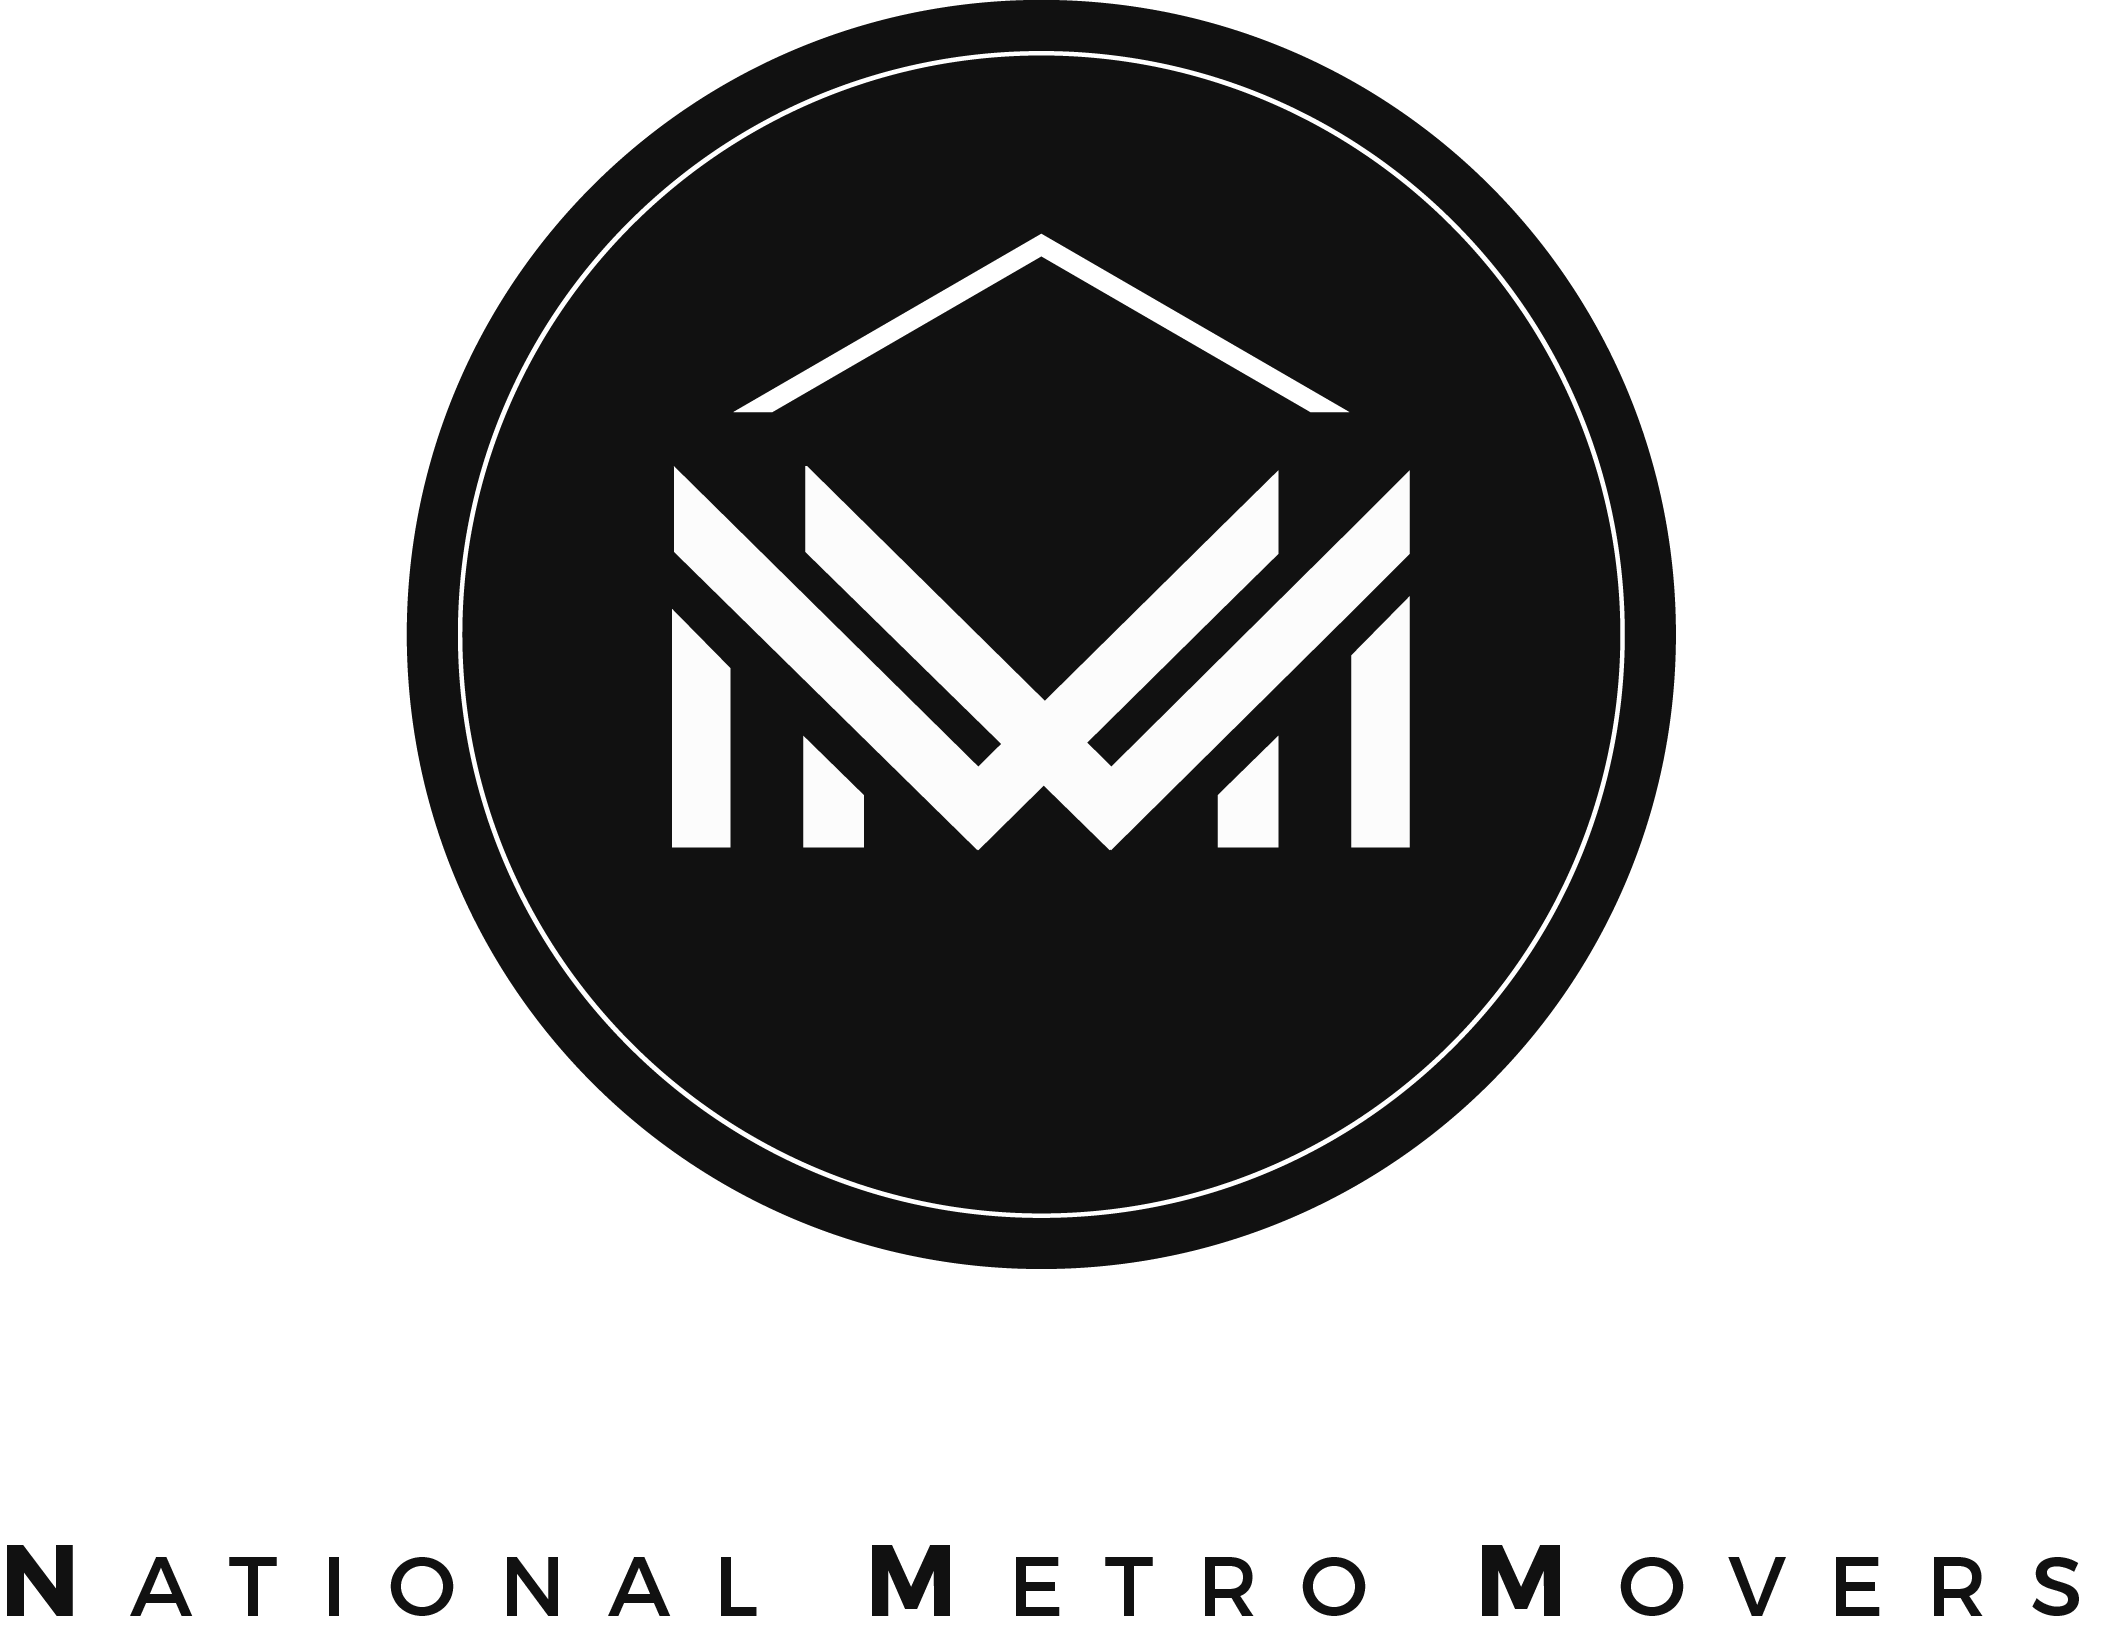 National Metro Movers